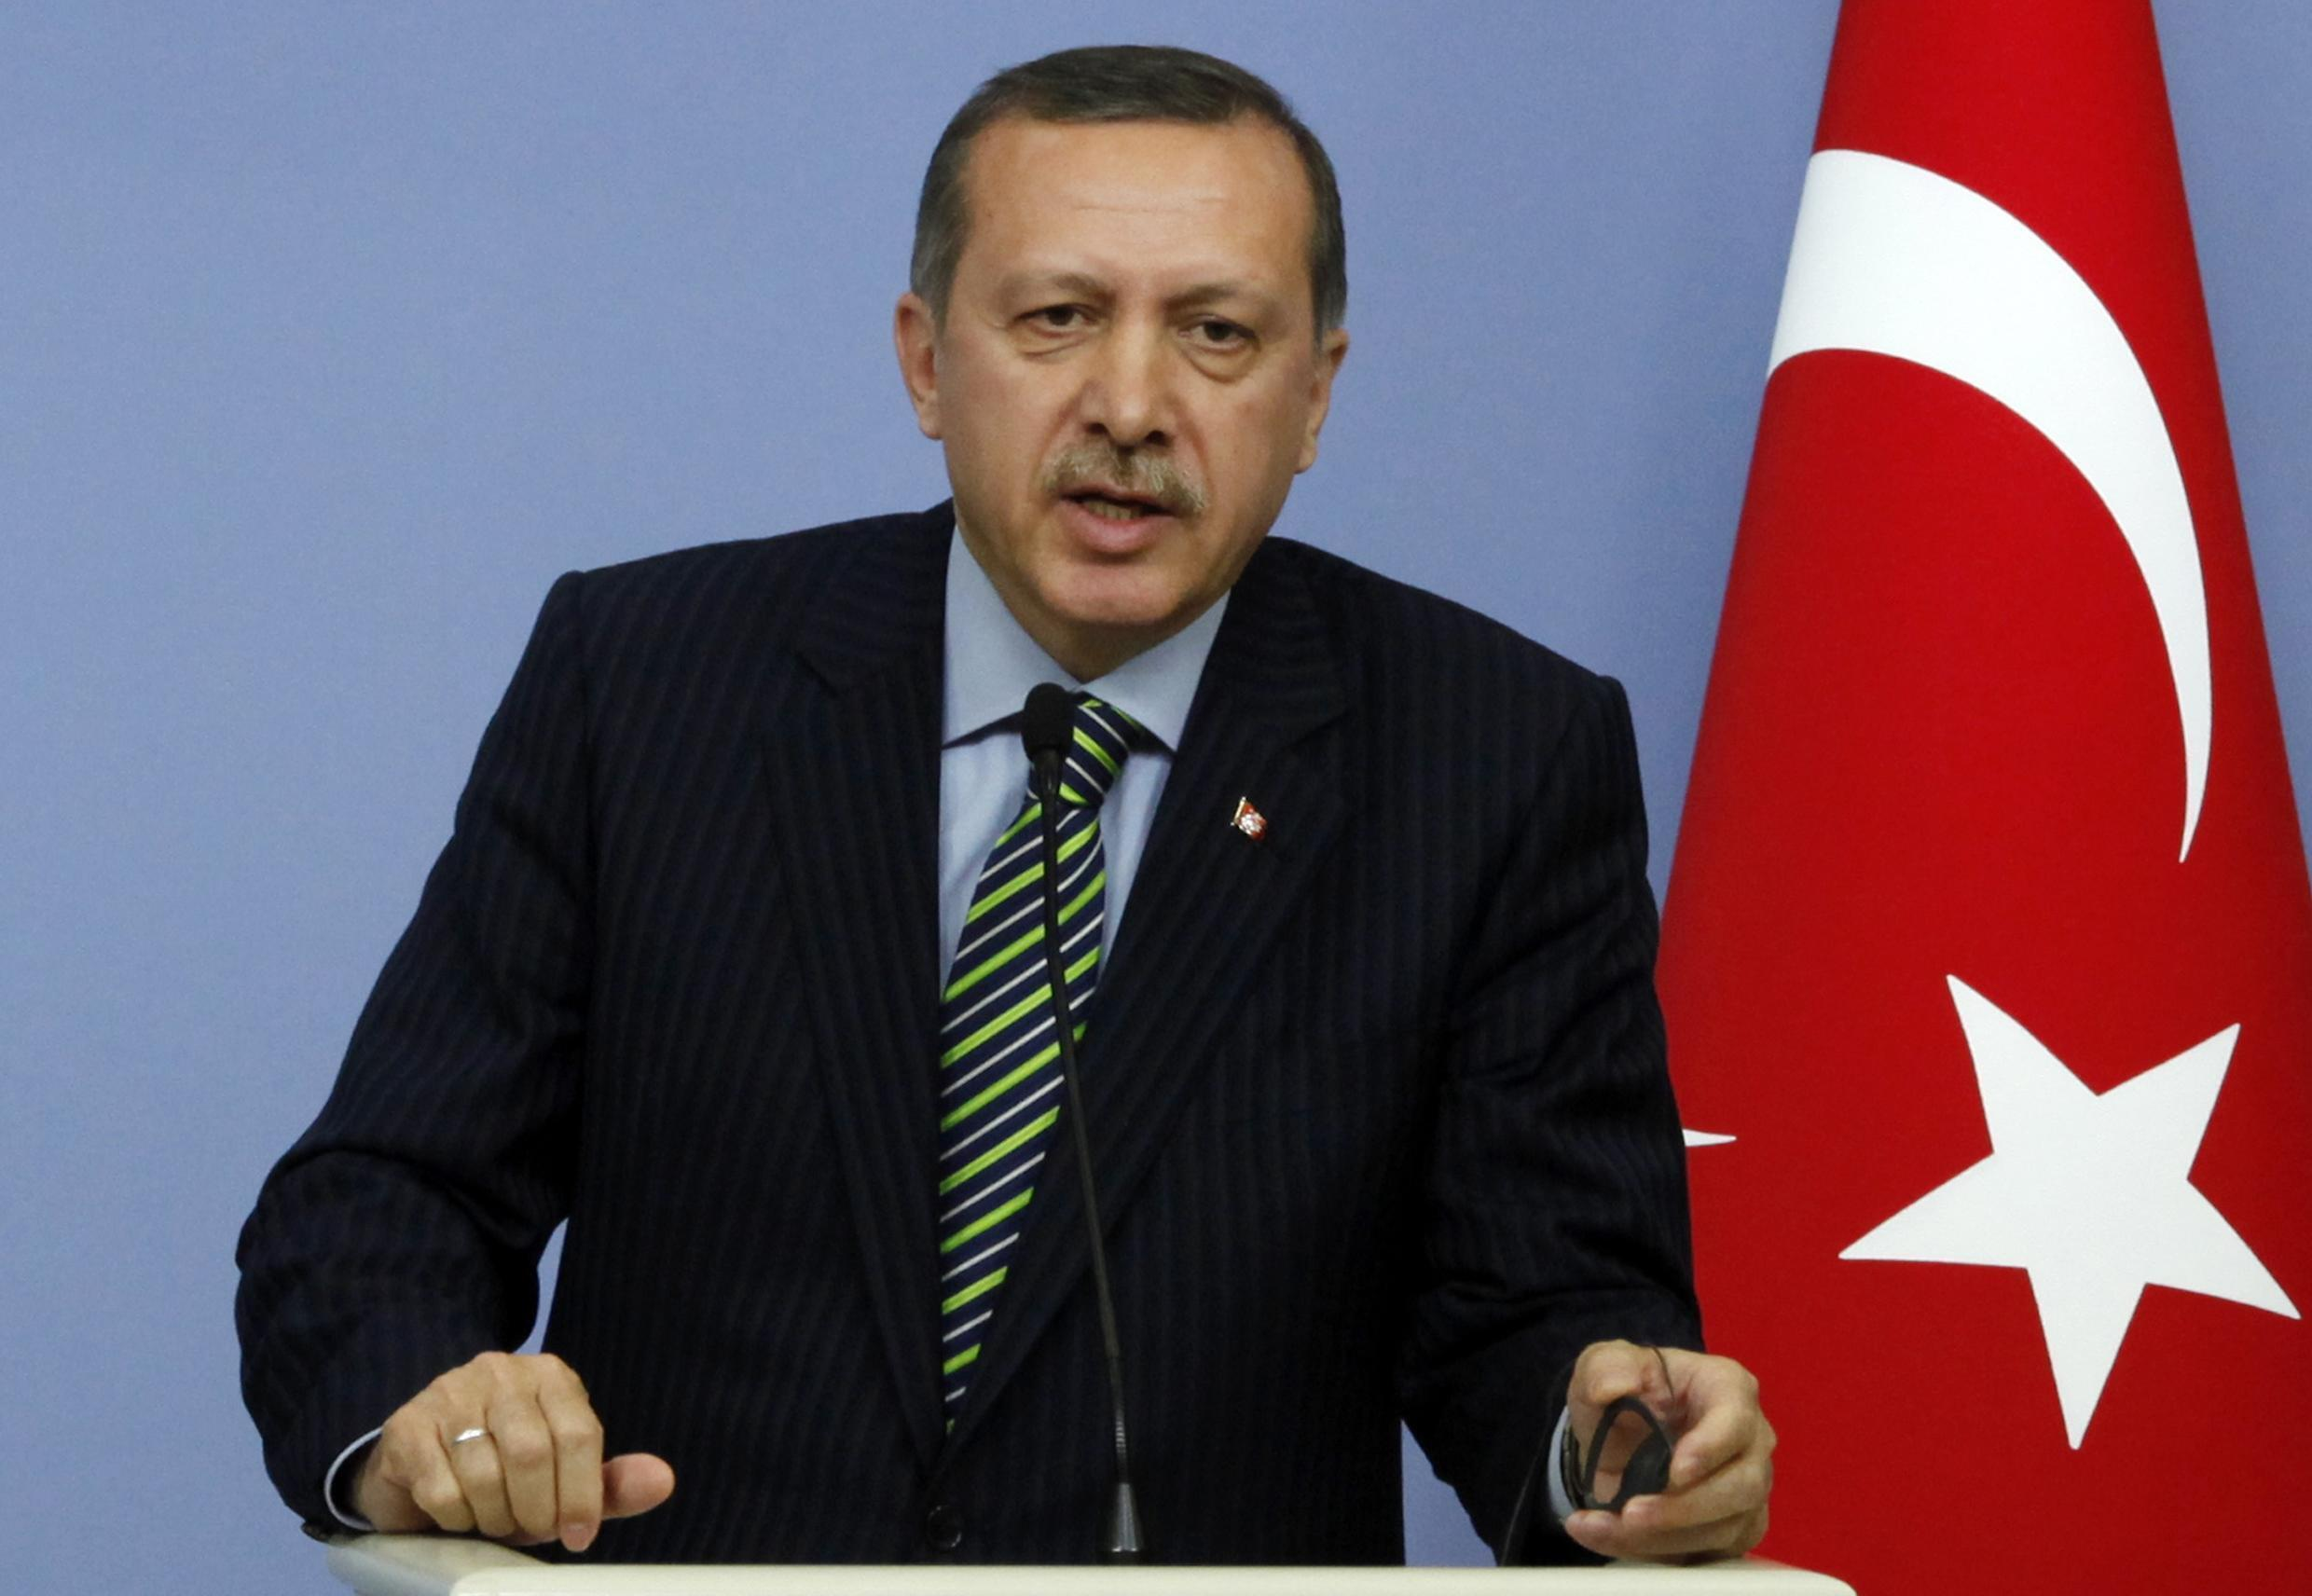 Turkish Prime Minister Recep Tayyip Erdoğan has been touring the country in a bid to drum up support for his party's proposed reforms.